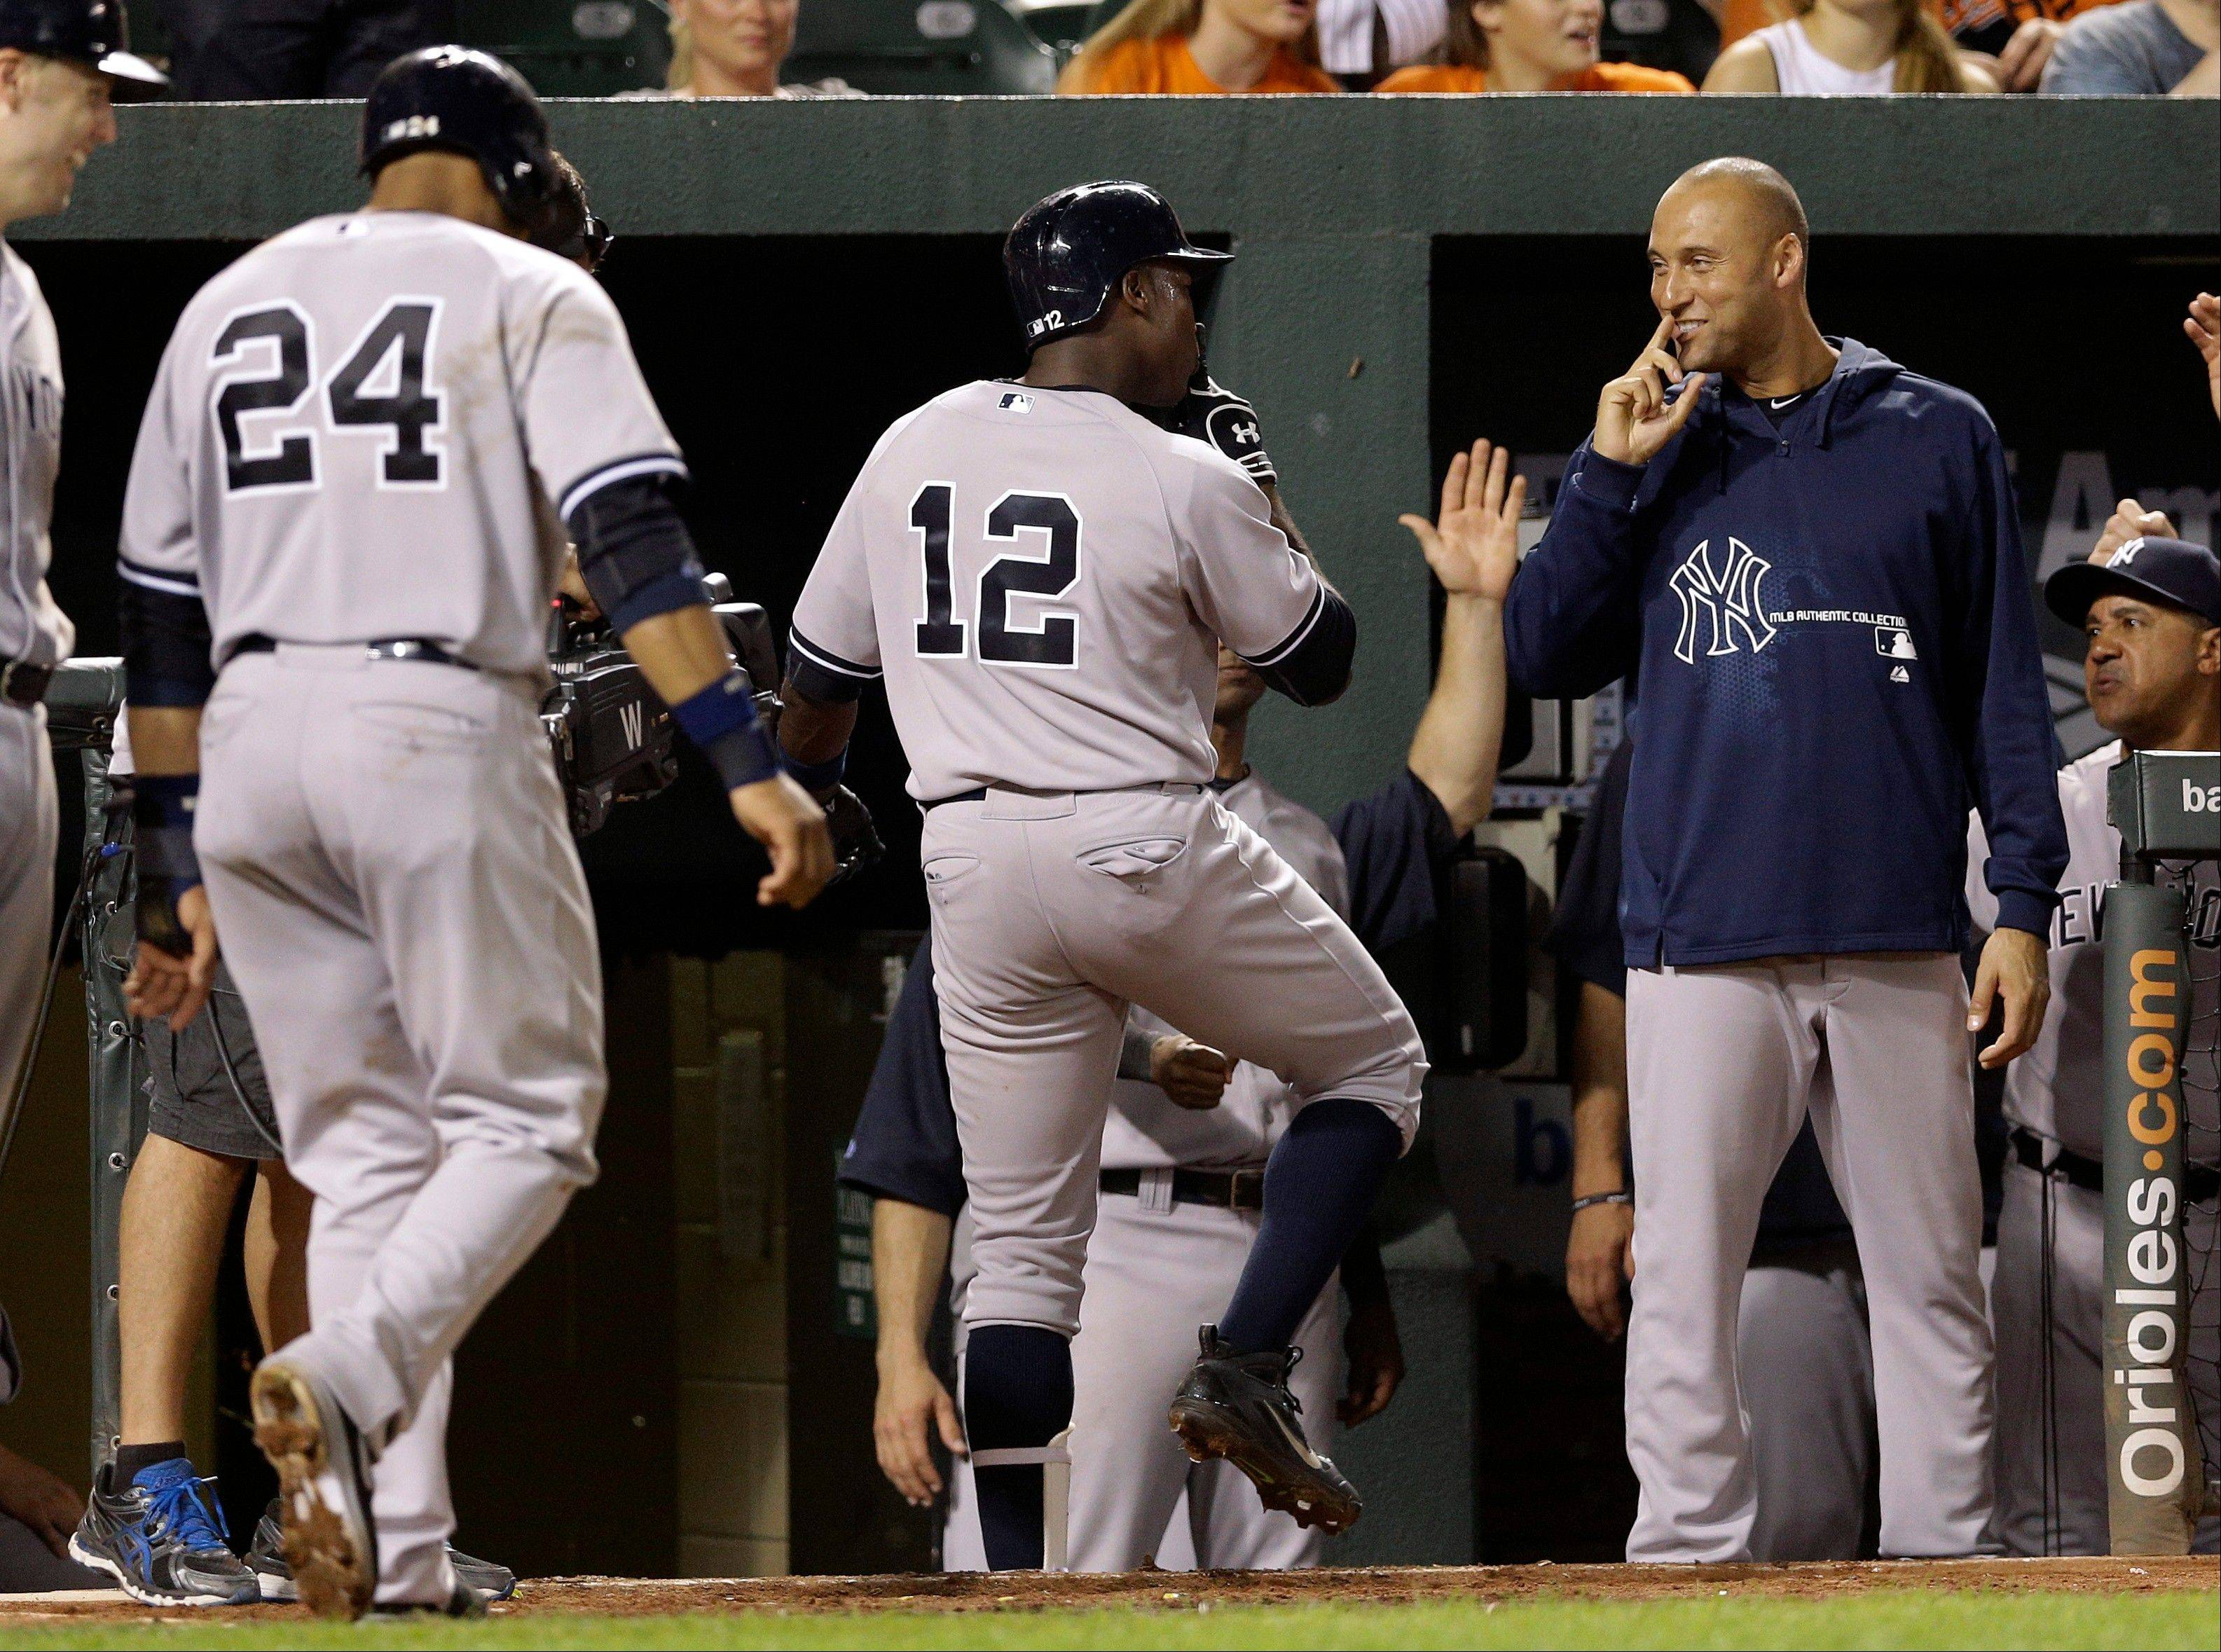 New York Yankees' Alfonso Soriano (12) and Derek Jeter, right, gestures after Soriano drove in teammate Robinson Cano (24) on a home run in the eighth inning of a baseball game against the Baltimore Orioles, Tuesday, Sept. 10, 2013, in Baltimore. New York won 7-5.